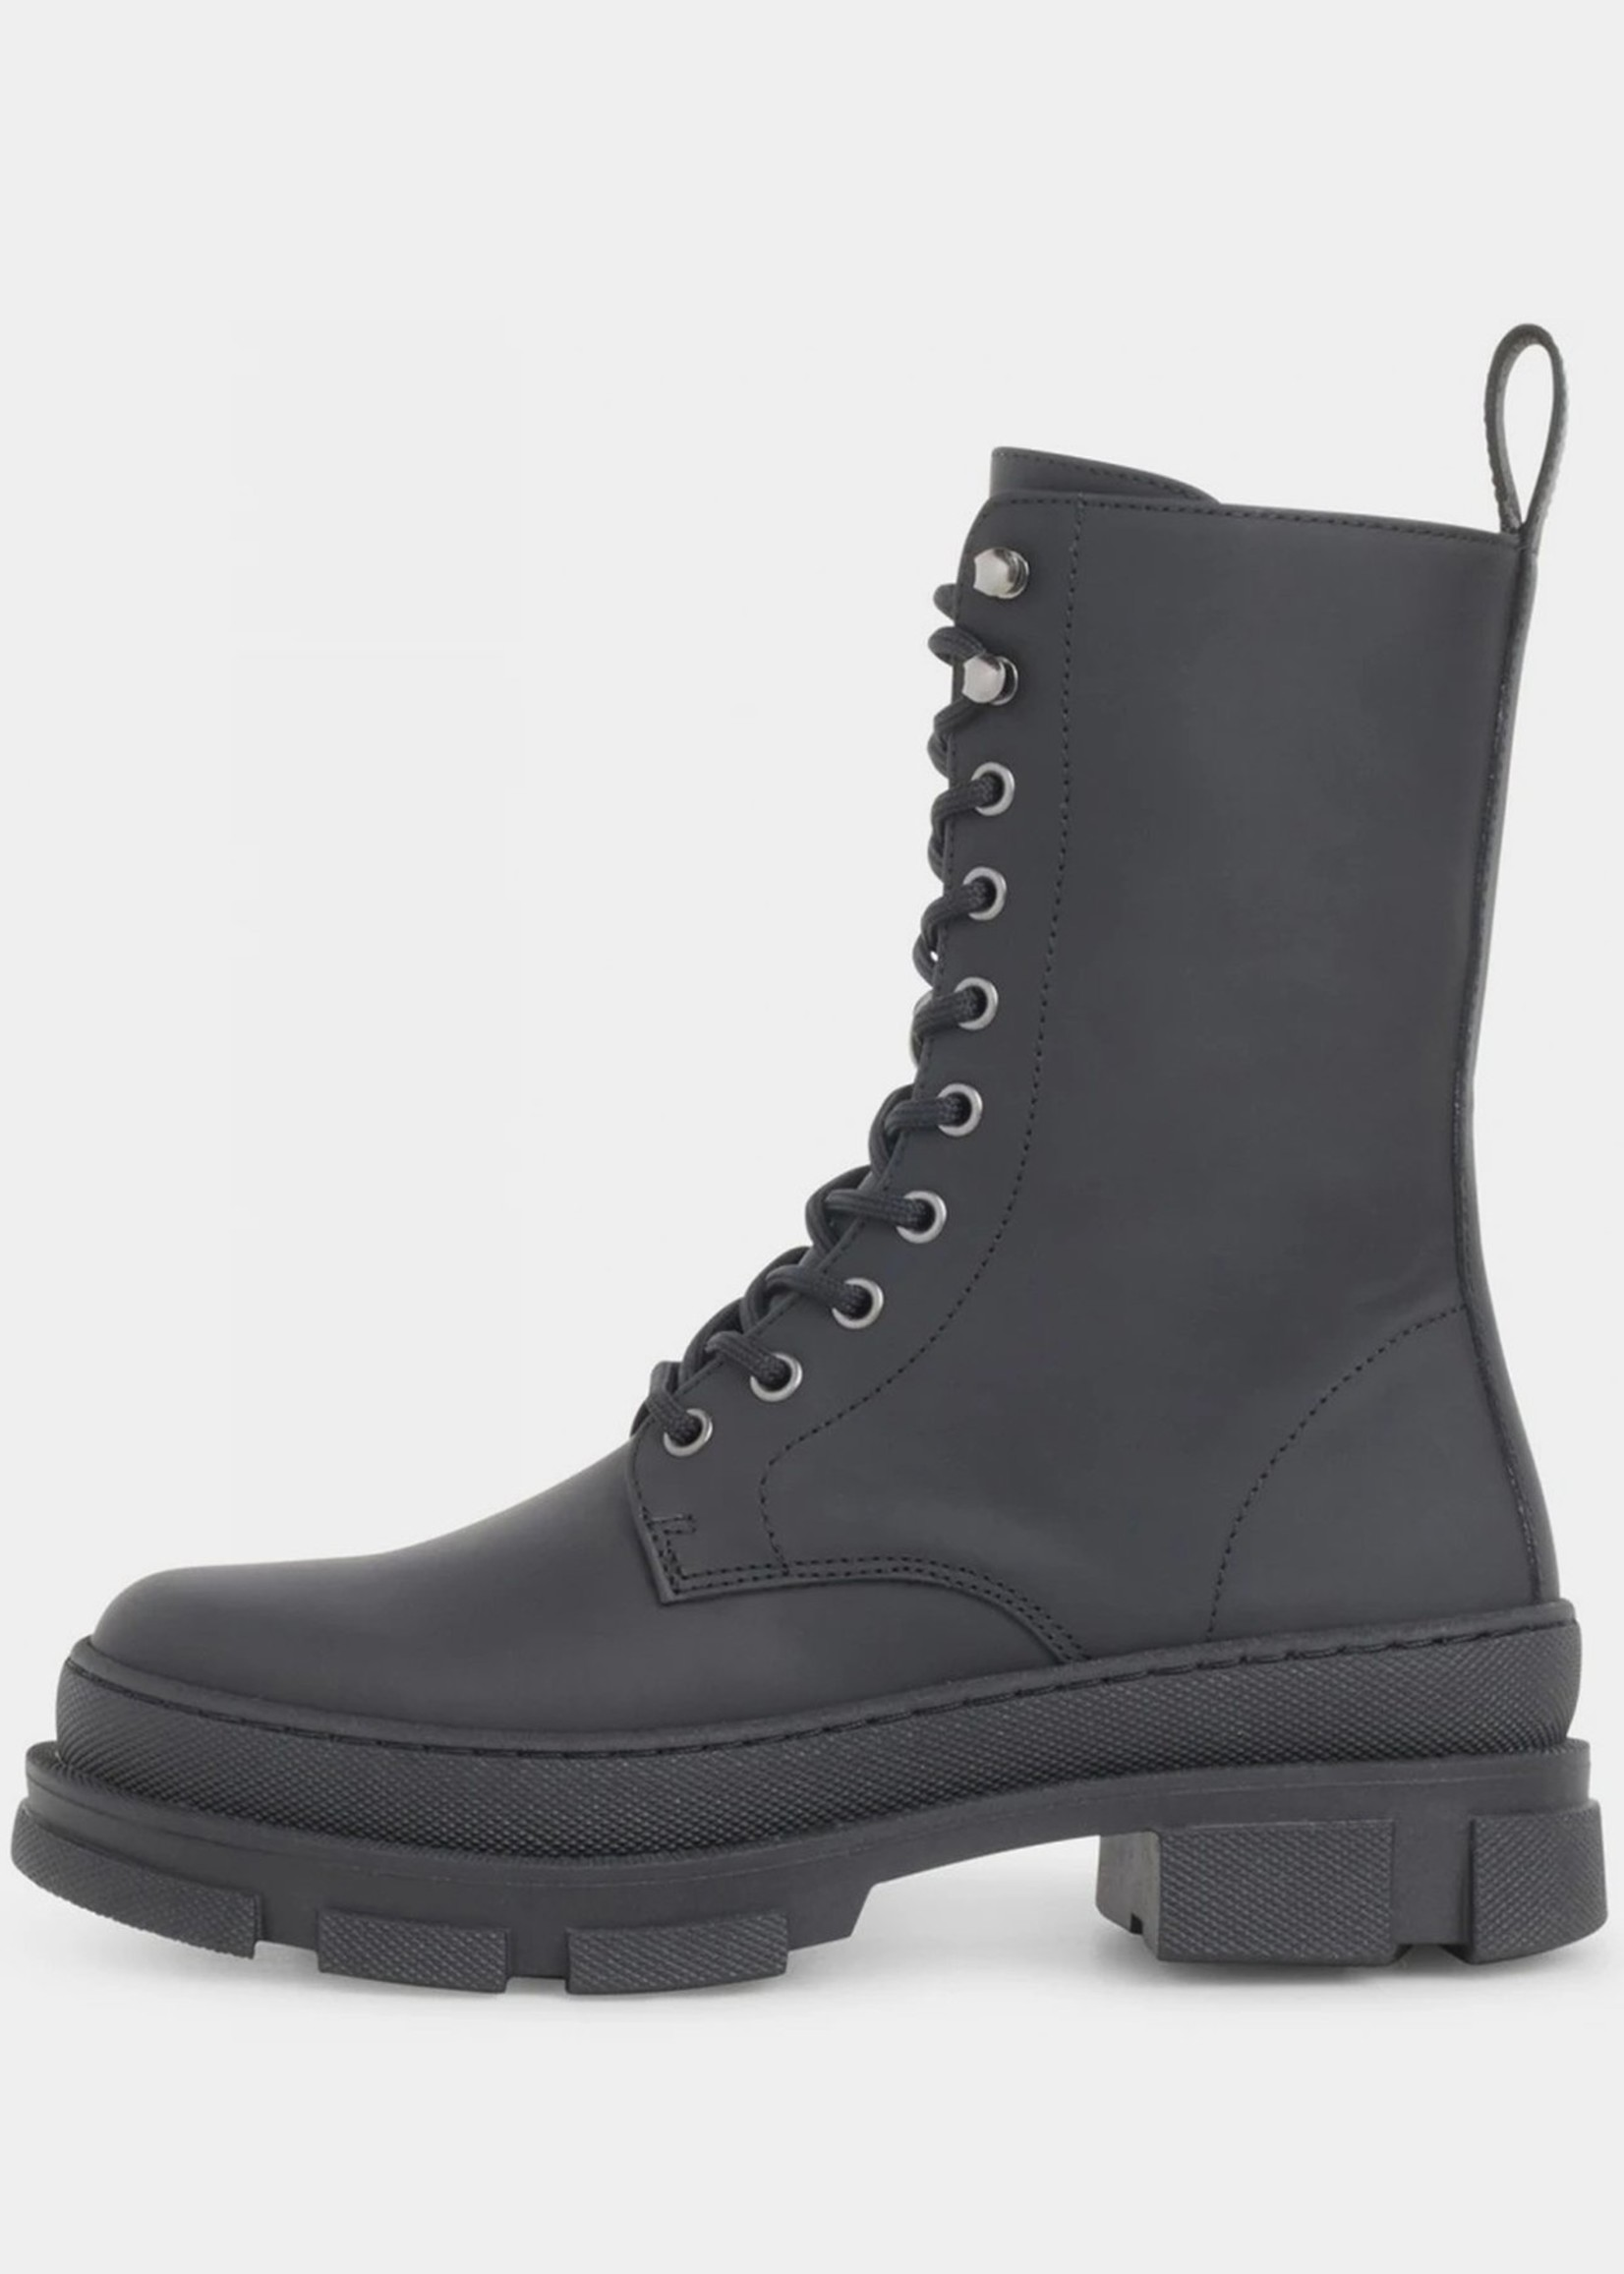 Garment Project Lucy Boot - Black Rubberish Leather